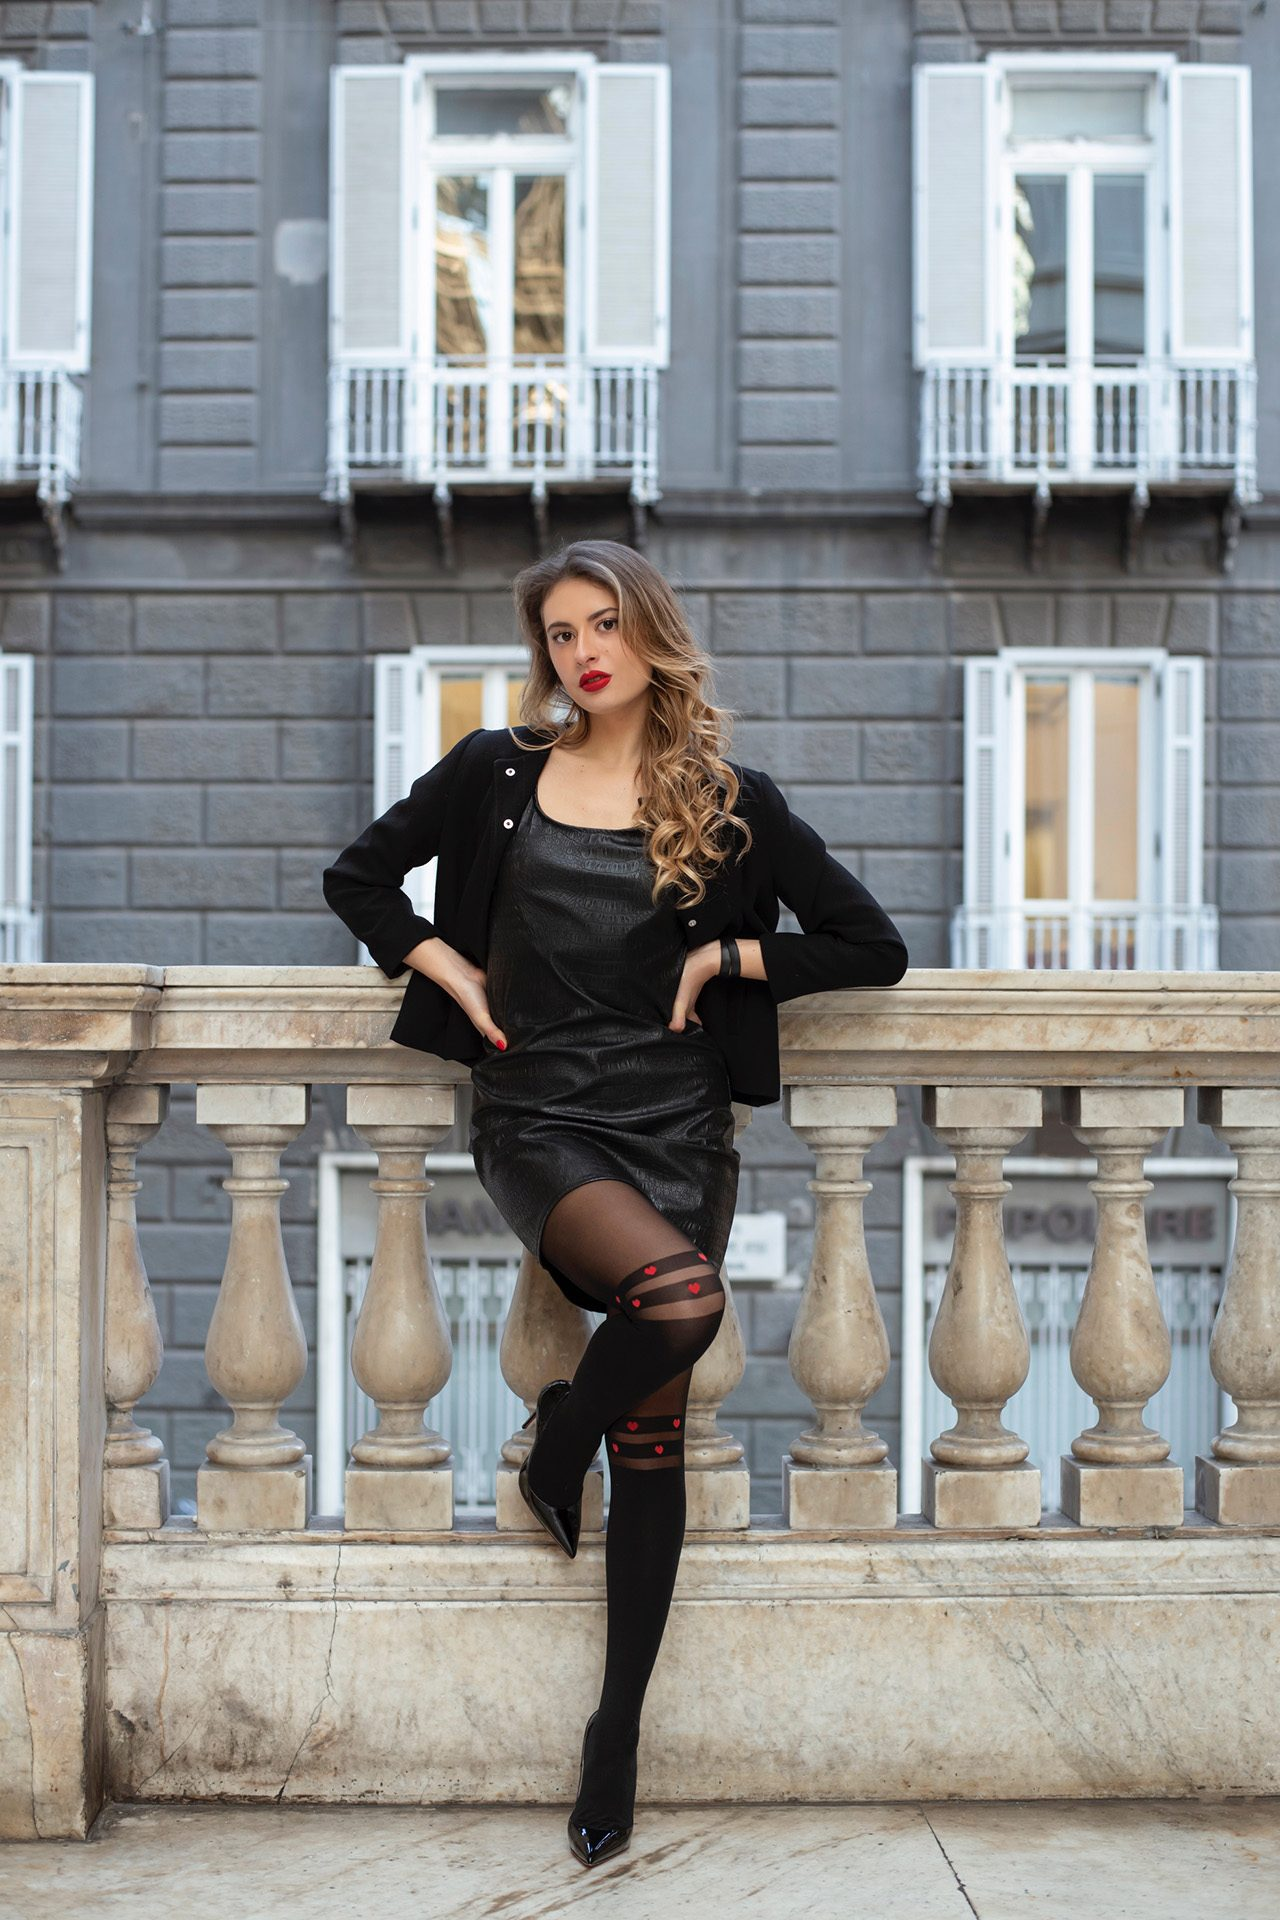 Chiara Stile - Tv Host, Journalist and Fashion Addicted